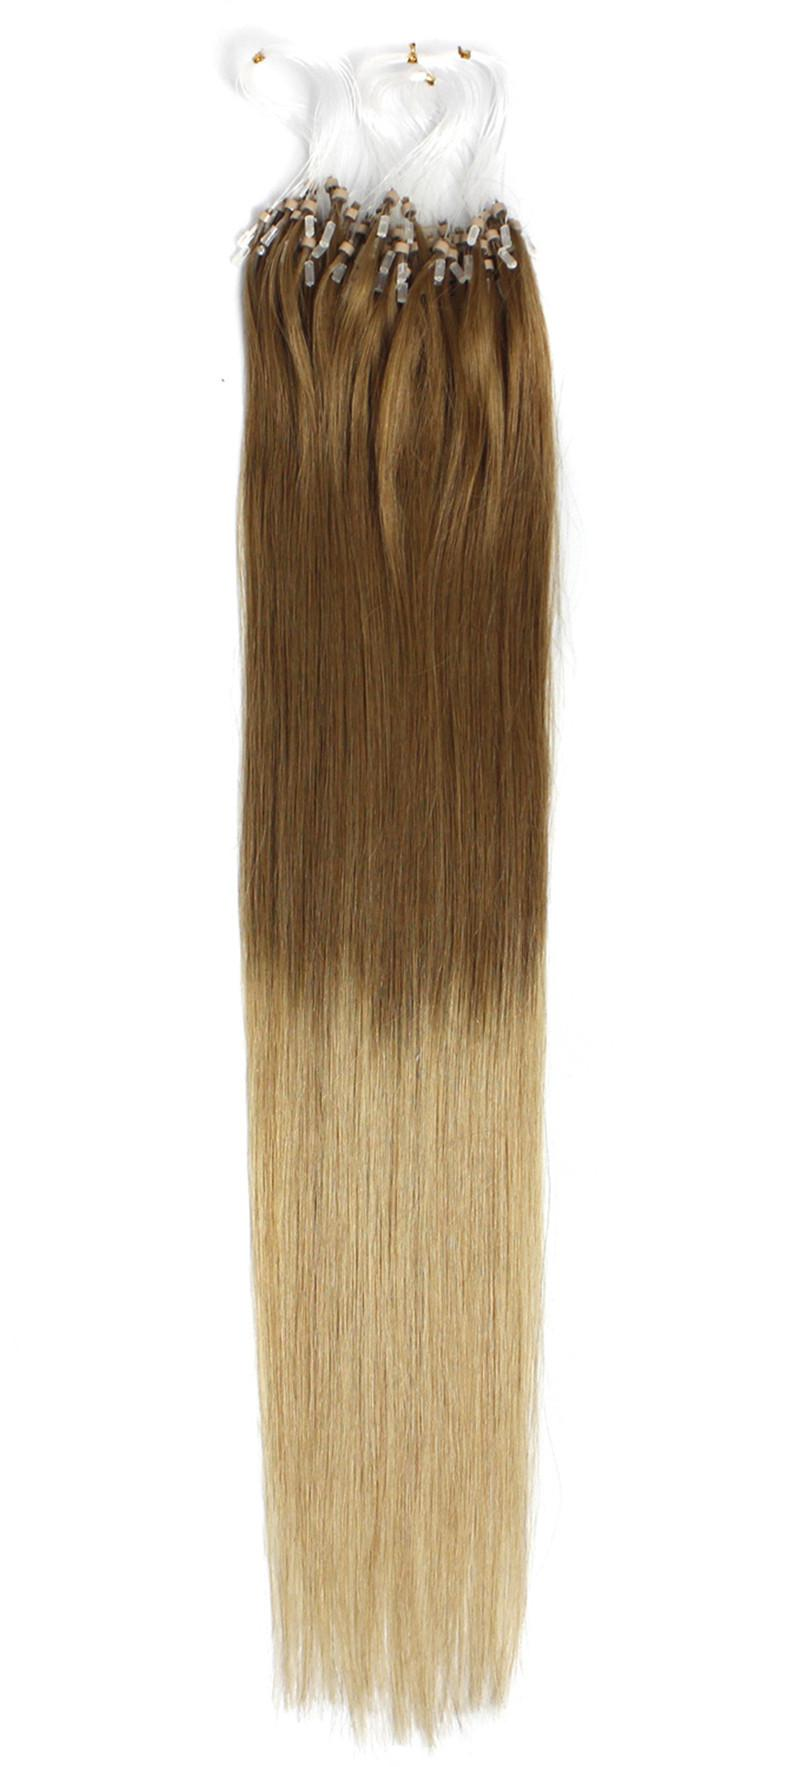 5A Grade 0.5g*200s Straight 12''-22'' 24'' 26'' 28'' 30'' Loop Micro Rings 100% Indian Human Hair Extensions